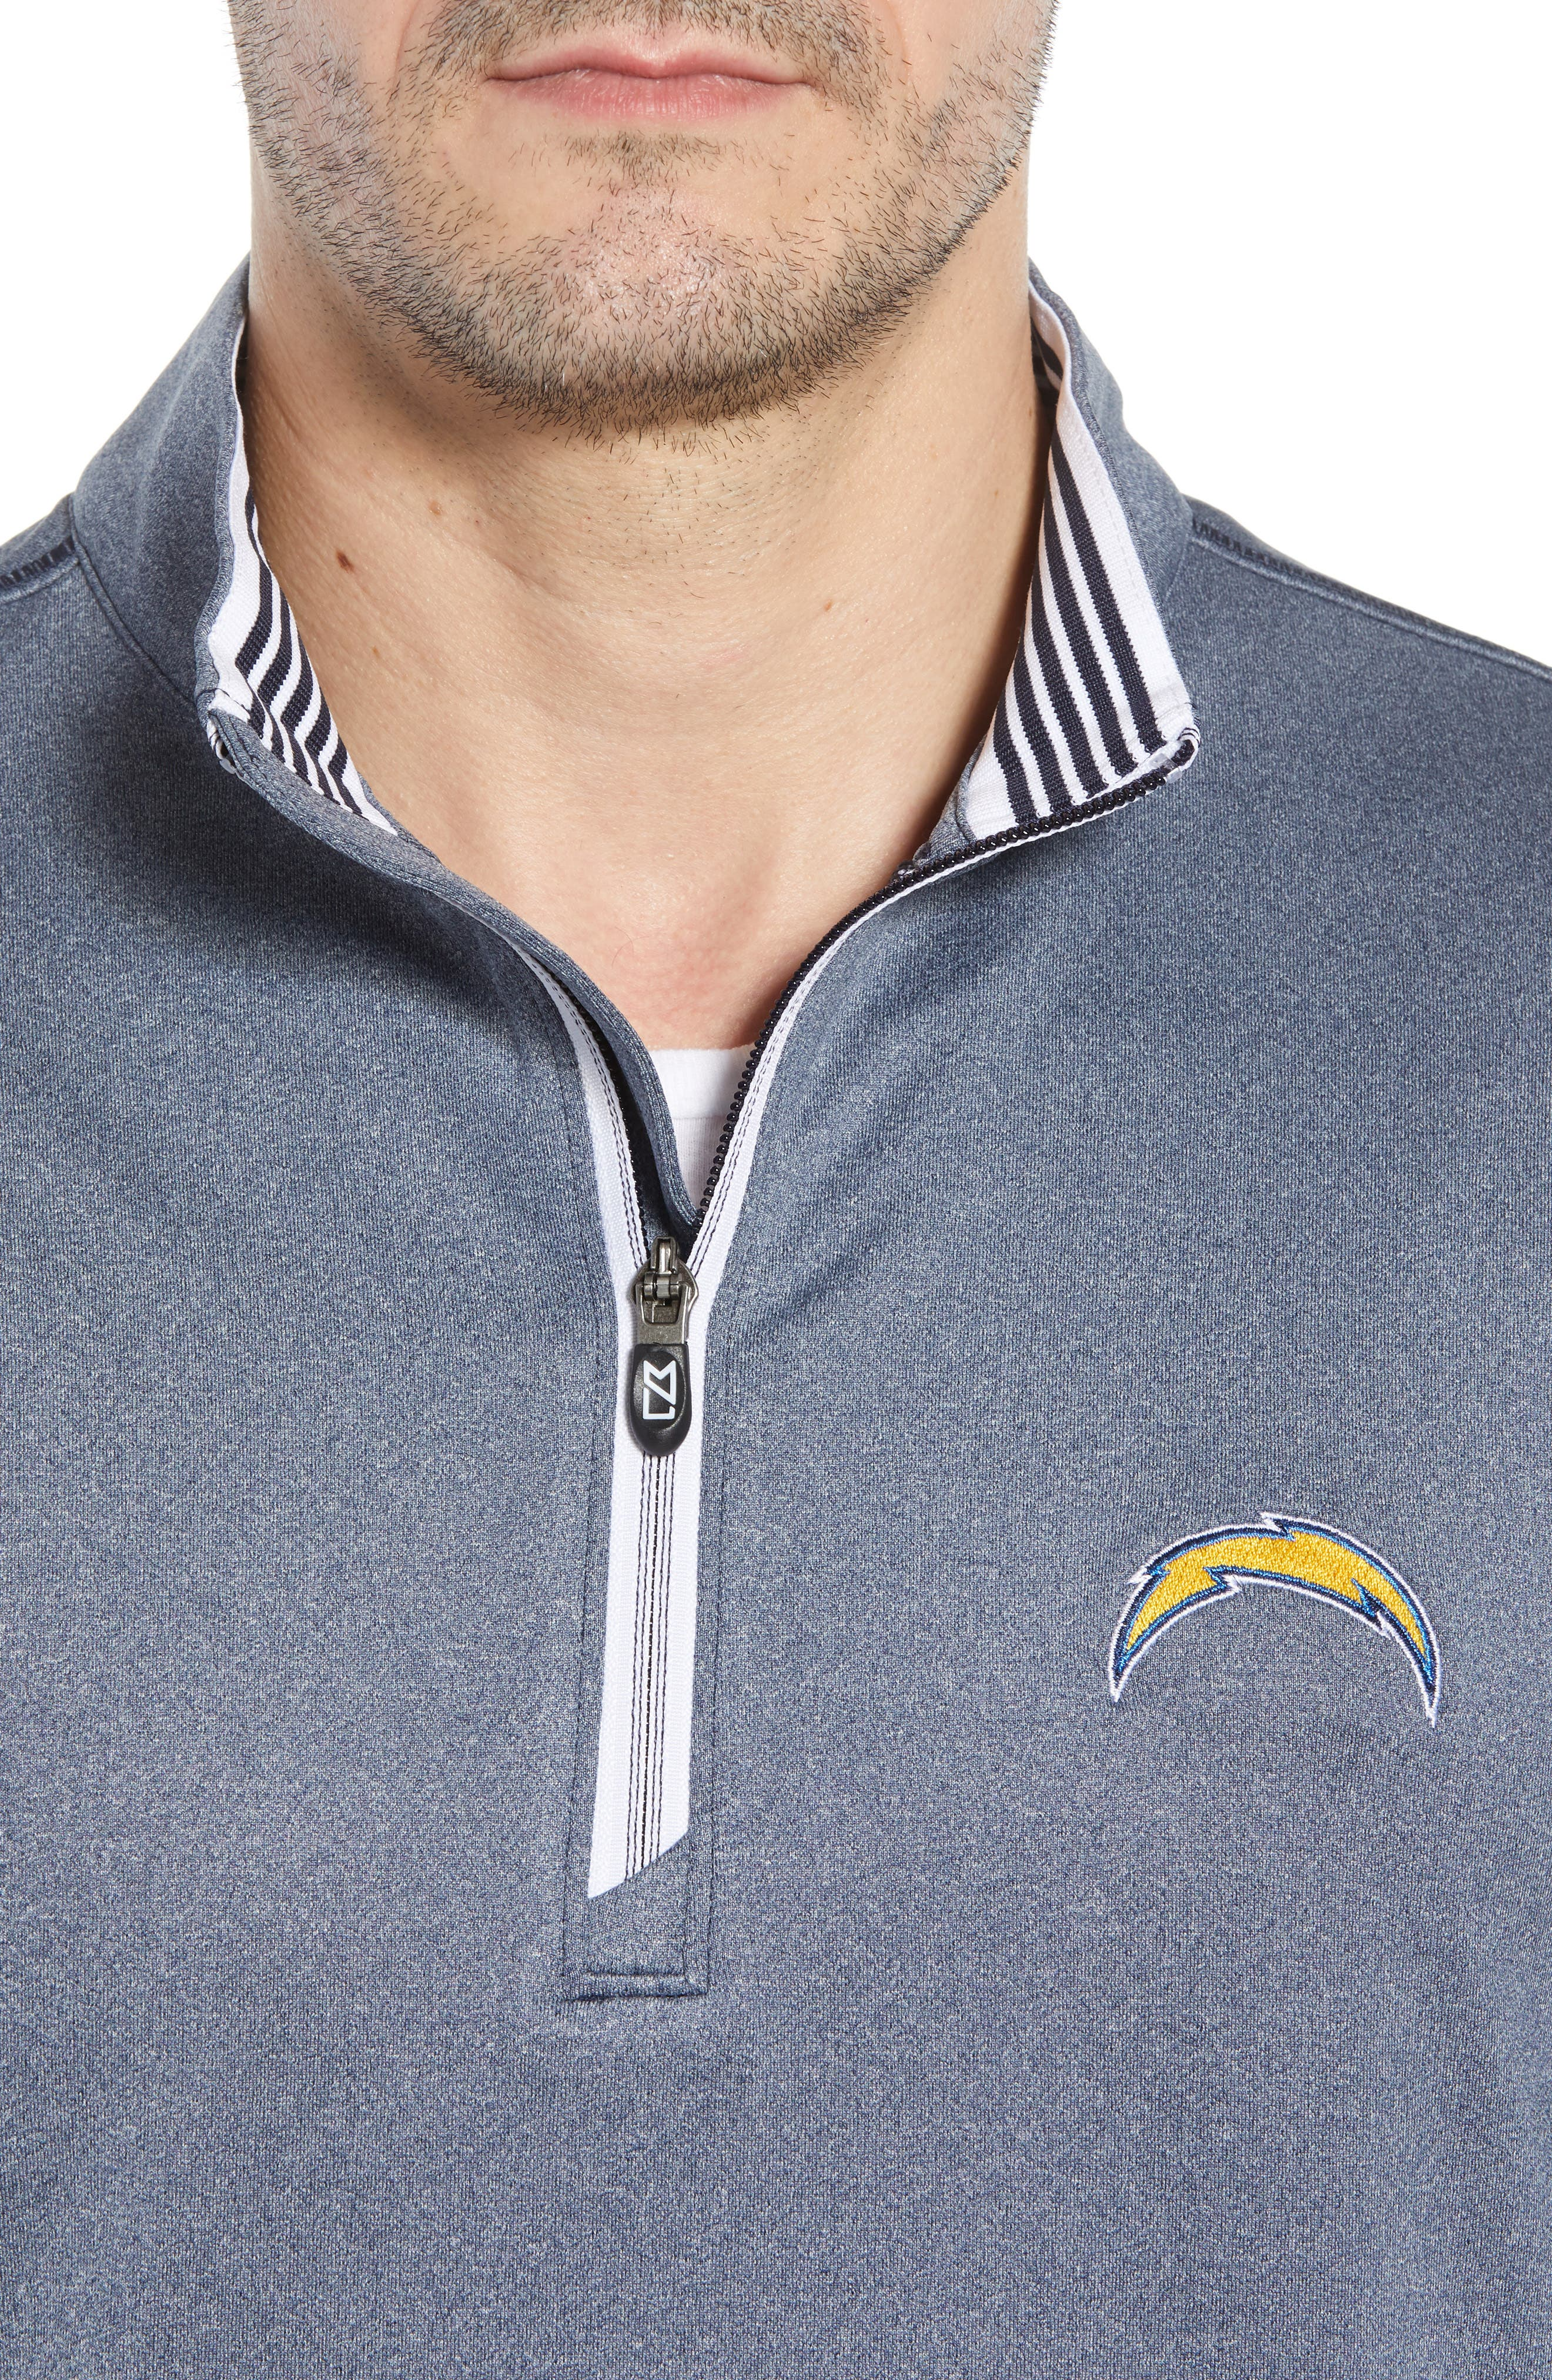 Endurance Los Angeles Chargers Regular Fit Pullover,                             Alternate thumbnail 4, color,                             LIBERTY NAVY HEATHER